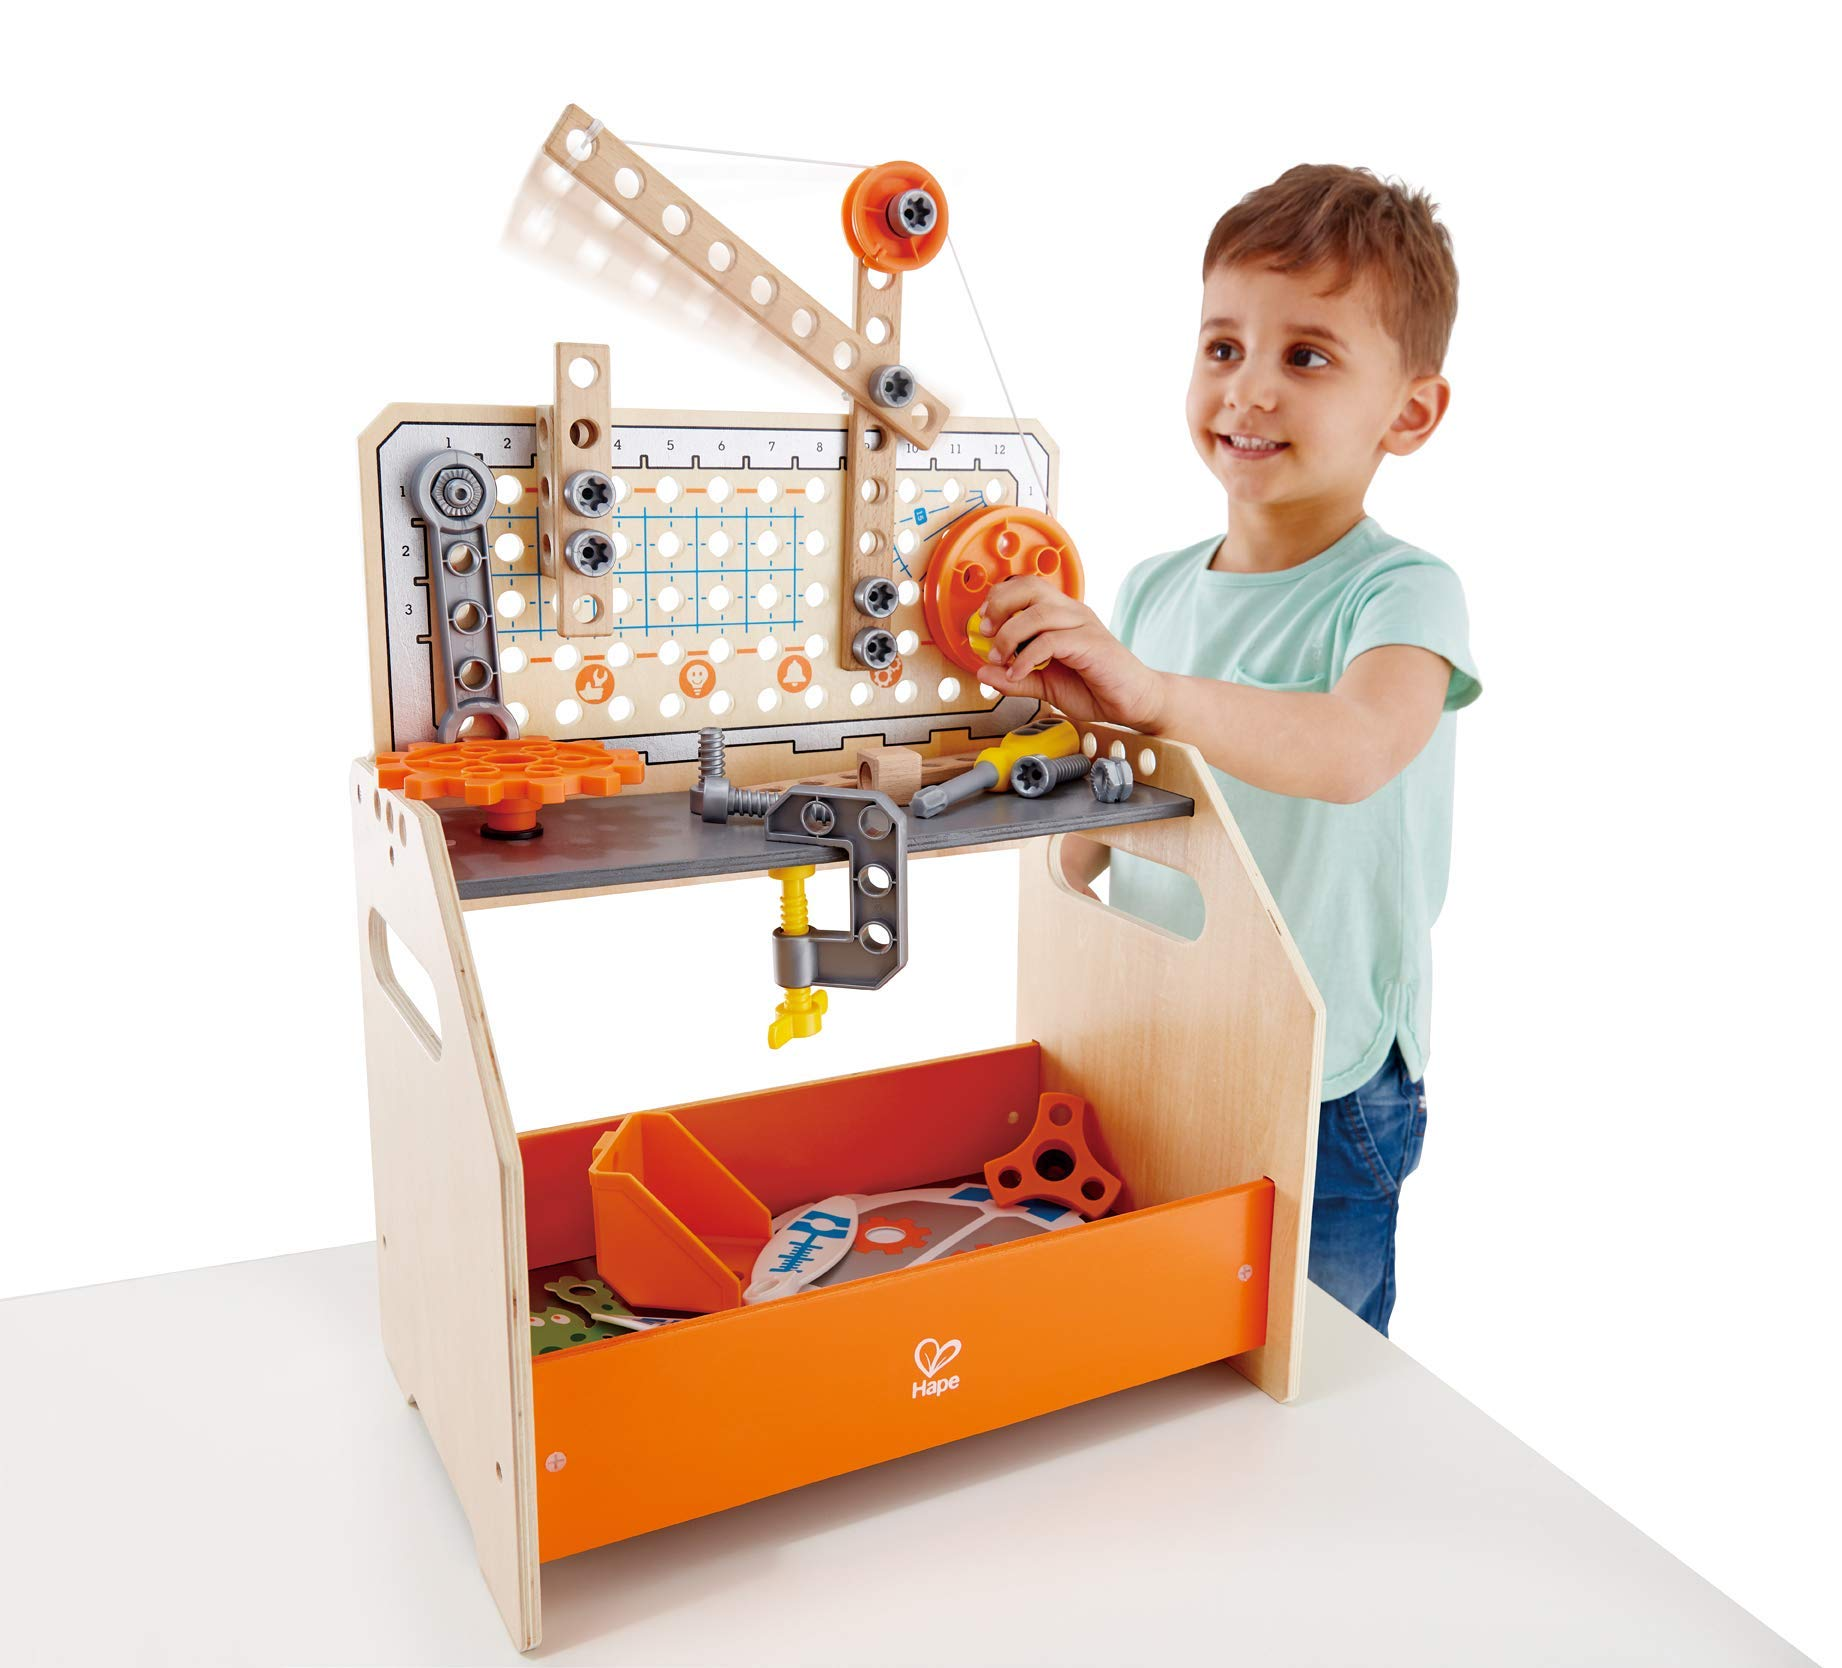 Hape Discovery Scientific Workbench | Kids Construction Toy, Children's Workshop with Over 10 Possible Creations, Toys for Kids 4+